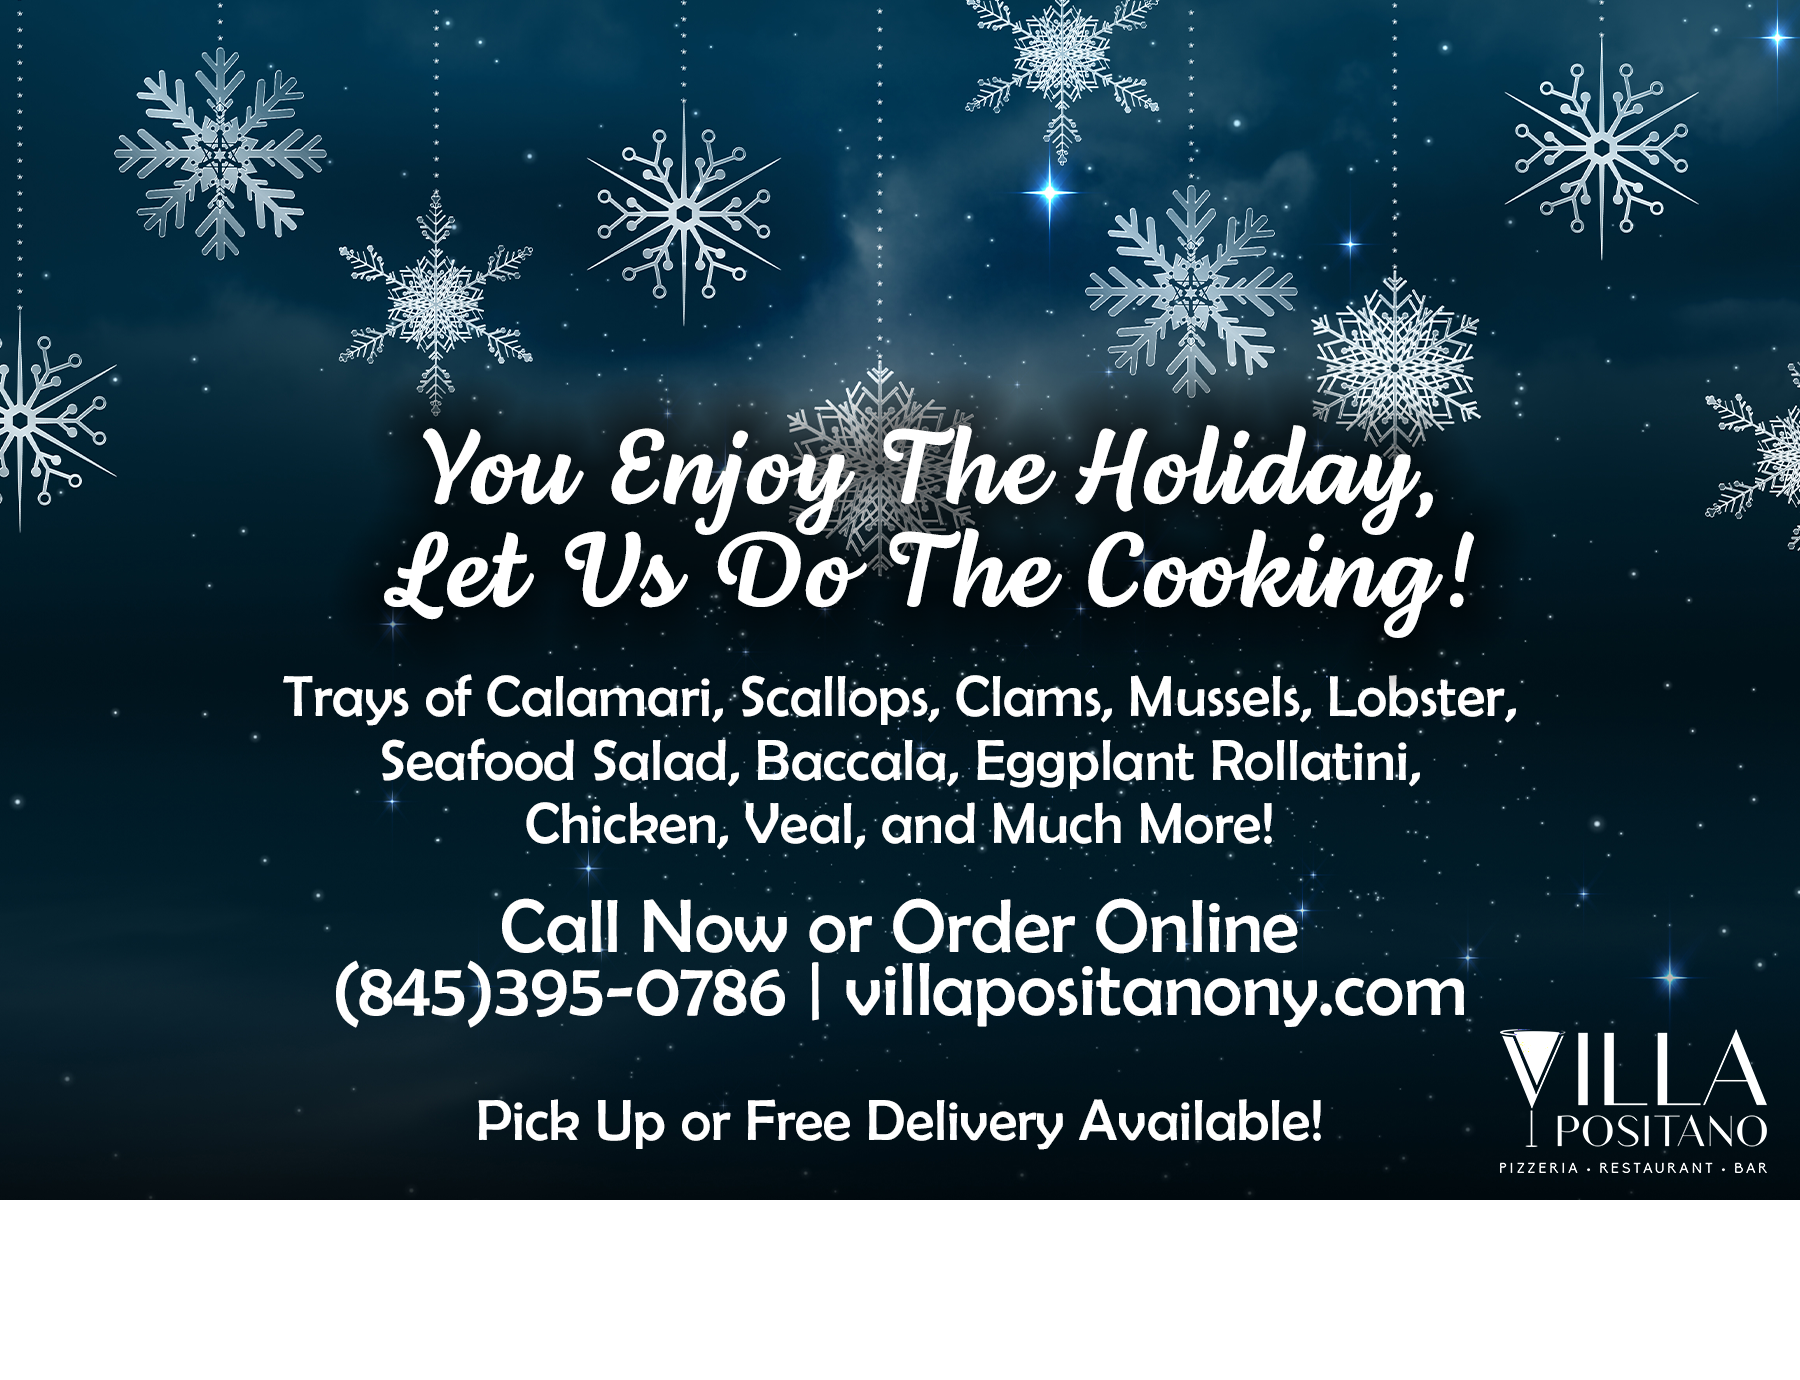 you enjoy the holiday, let us do the cooking! trays of calamari, scallops, clams, mussels, lobster, seafood salad, Baccala, eggplant rollatini, chicken, veal and much more. call now or order online. 845-395-0786 | villapositanony.com. Pick up or delivery avaliable